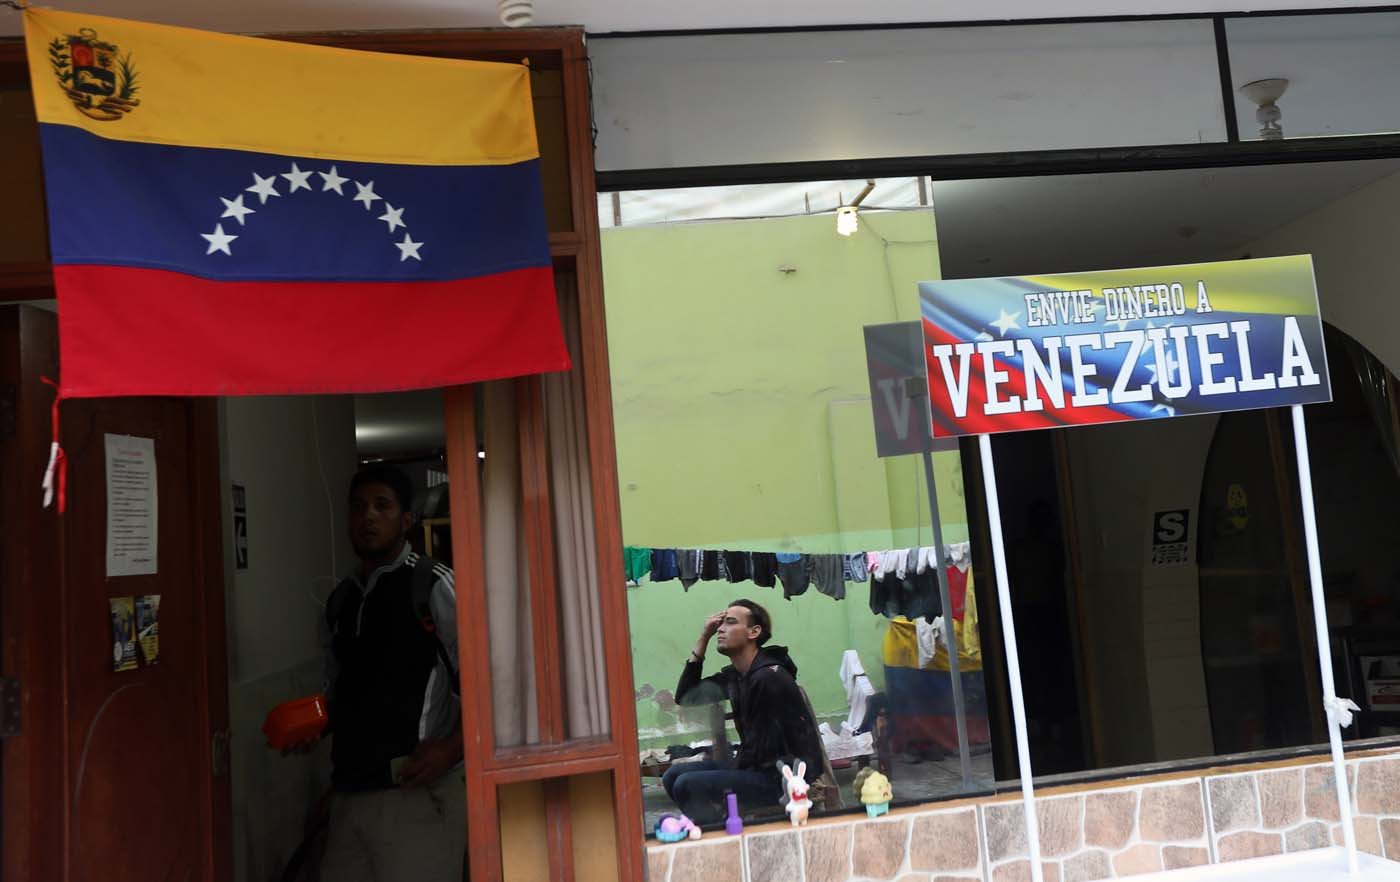 Venezuelan migrants stand next to a sign reading: ' Send money to Venezuela' at a shelter for Venezuelans in San Juan de Lurigancho, on the outskirts of Lima, Peru March 9, 2018. REUTERS/Mariana Bazo